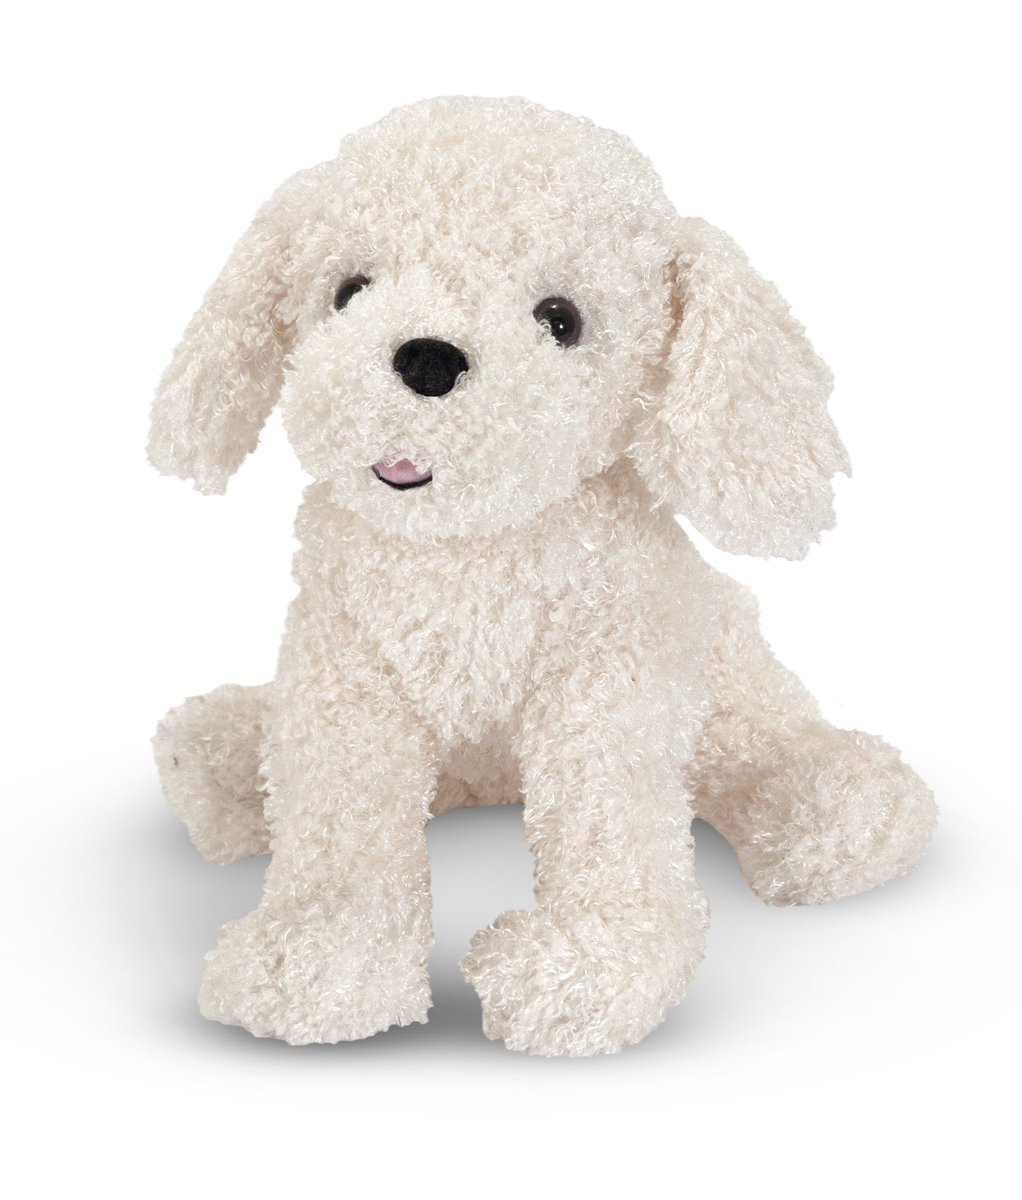 Amazon Com Melissa Doug 7487 Stuffed Bichon Frise Puppy Doll